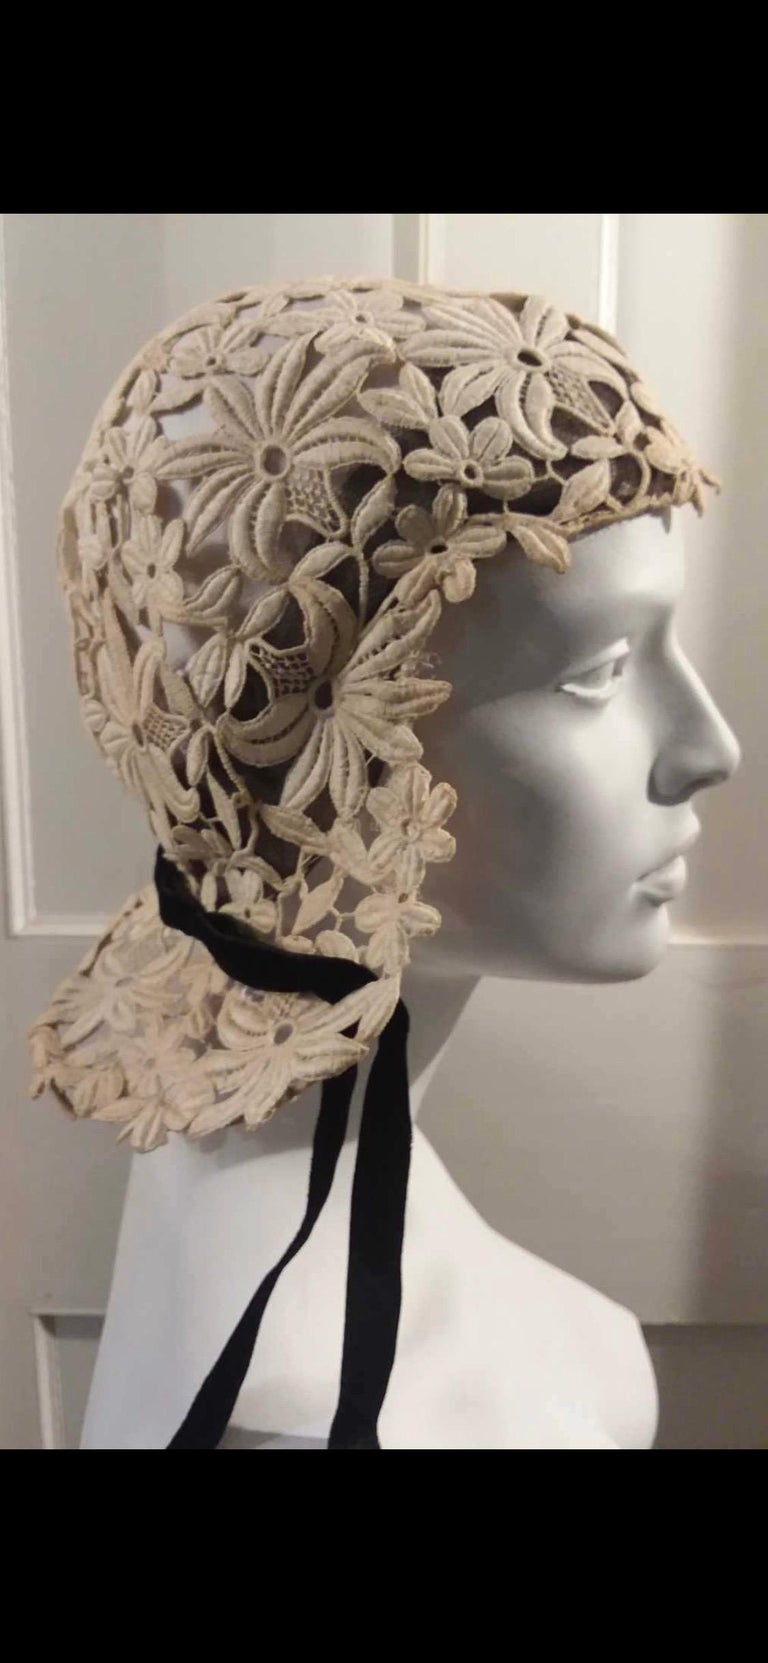 1930s Suzanne Rémy Belgian Lace Art Deco Joan of Arc Style Helmet Cloche Wedding Hat.   Suzanne Rémy trained with Schiaparelli and was the head milliner at Agnes of Paris before emigrating to the US after WW2 and opening a millinery shop with Roger